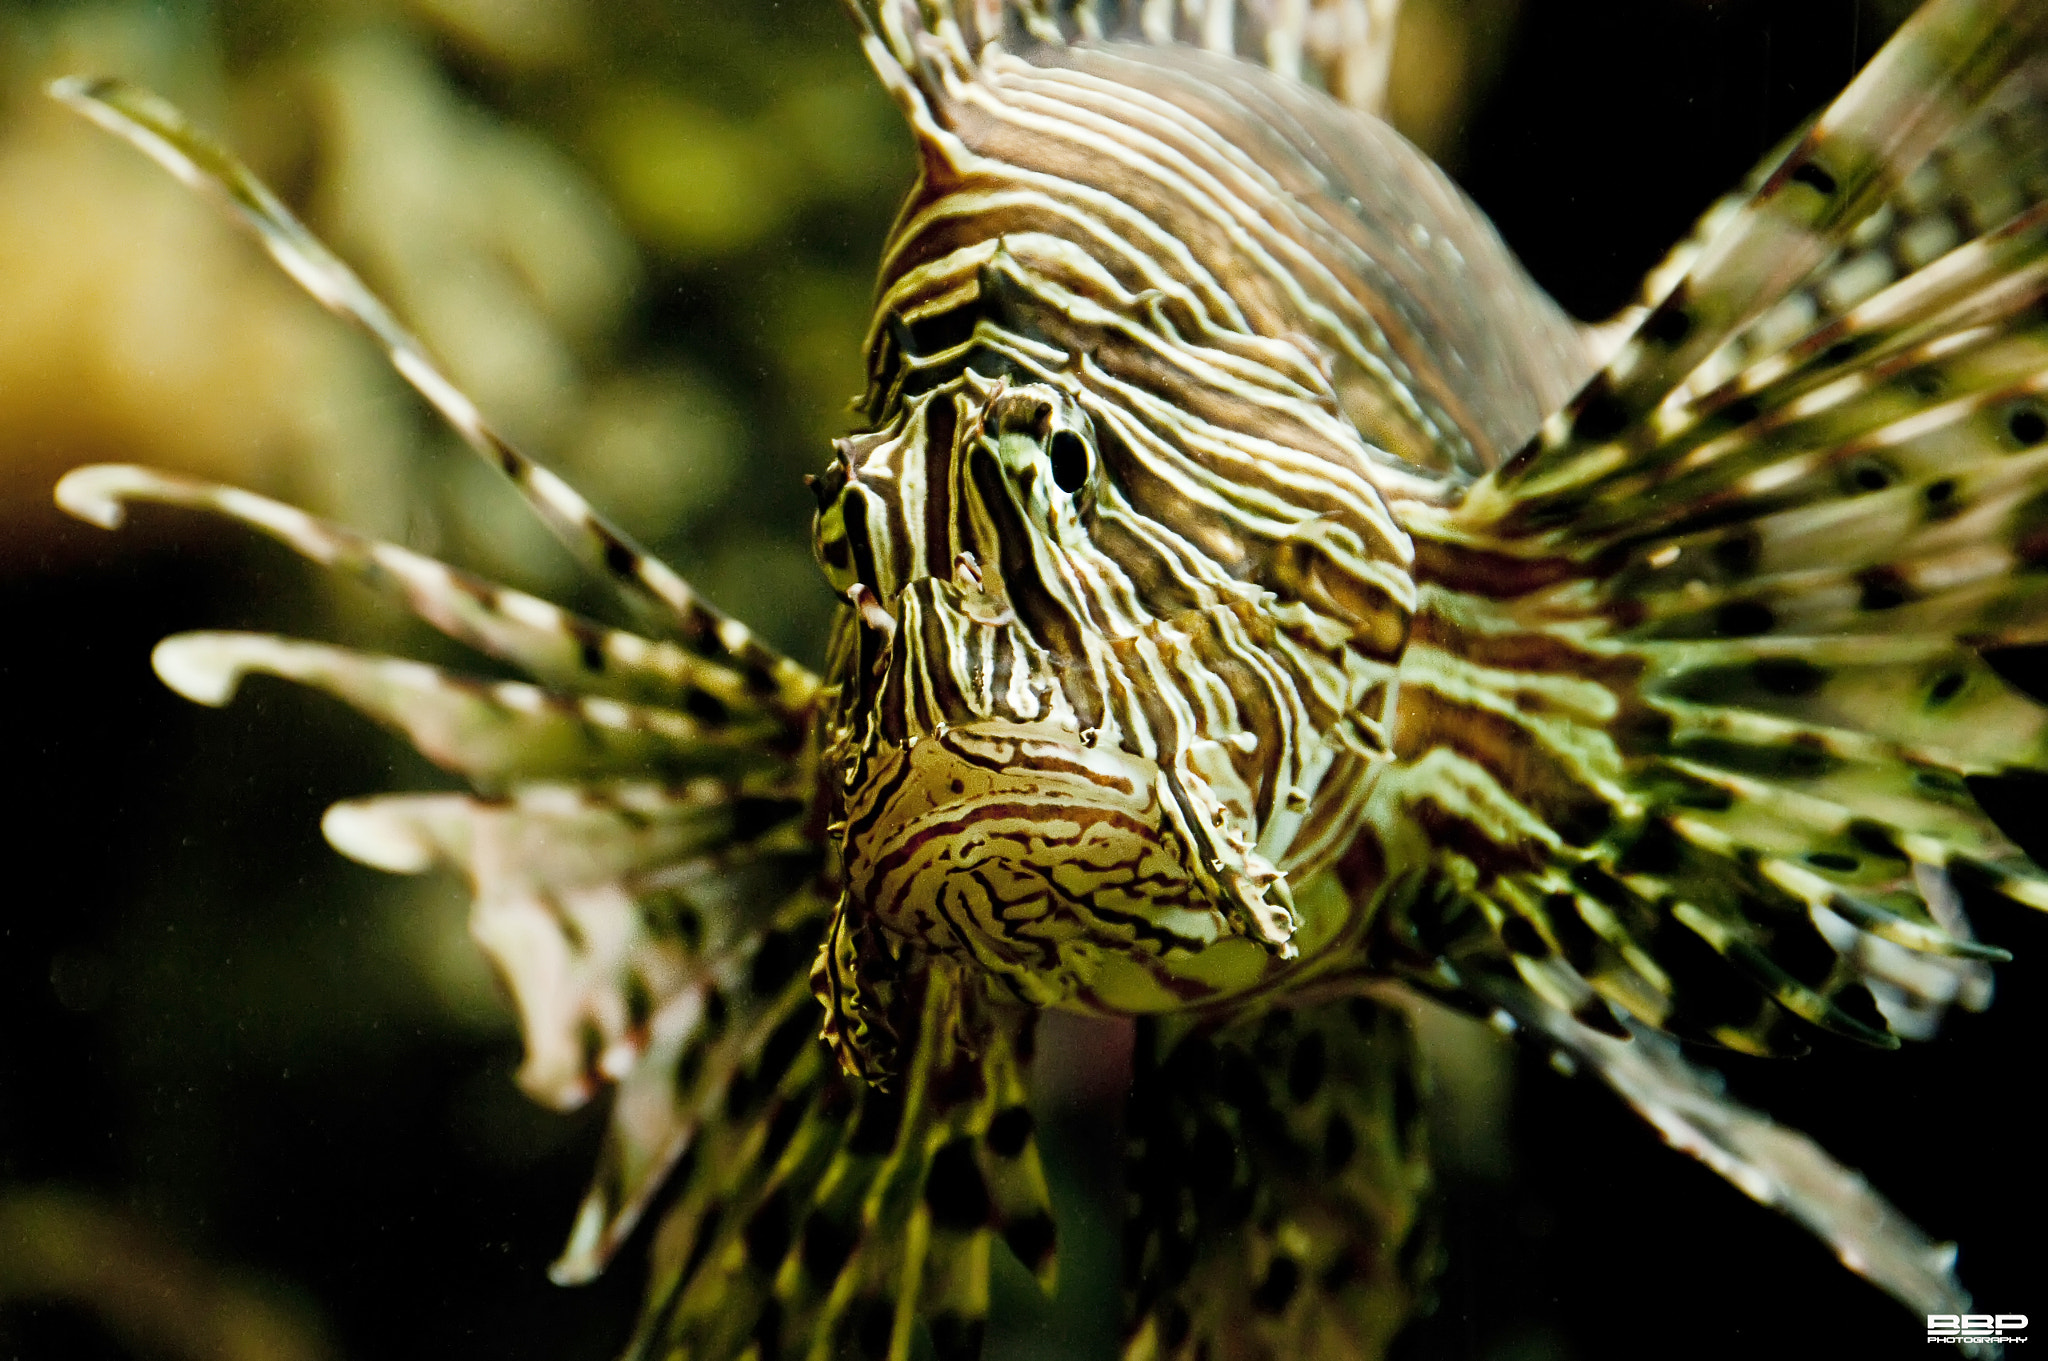 Photograph Lionsfish by Bert Broers on 500px